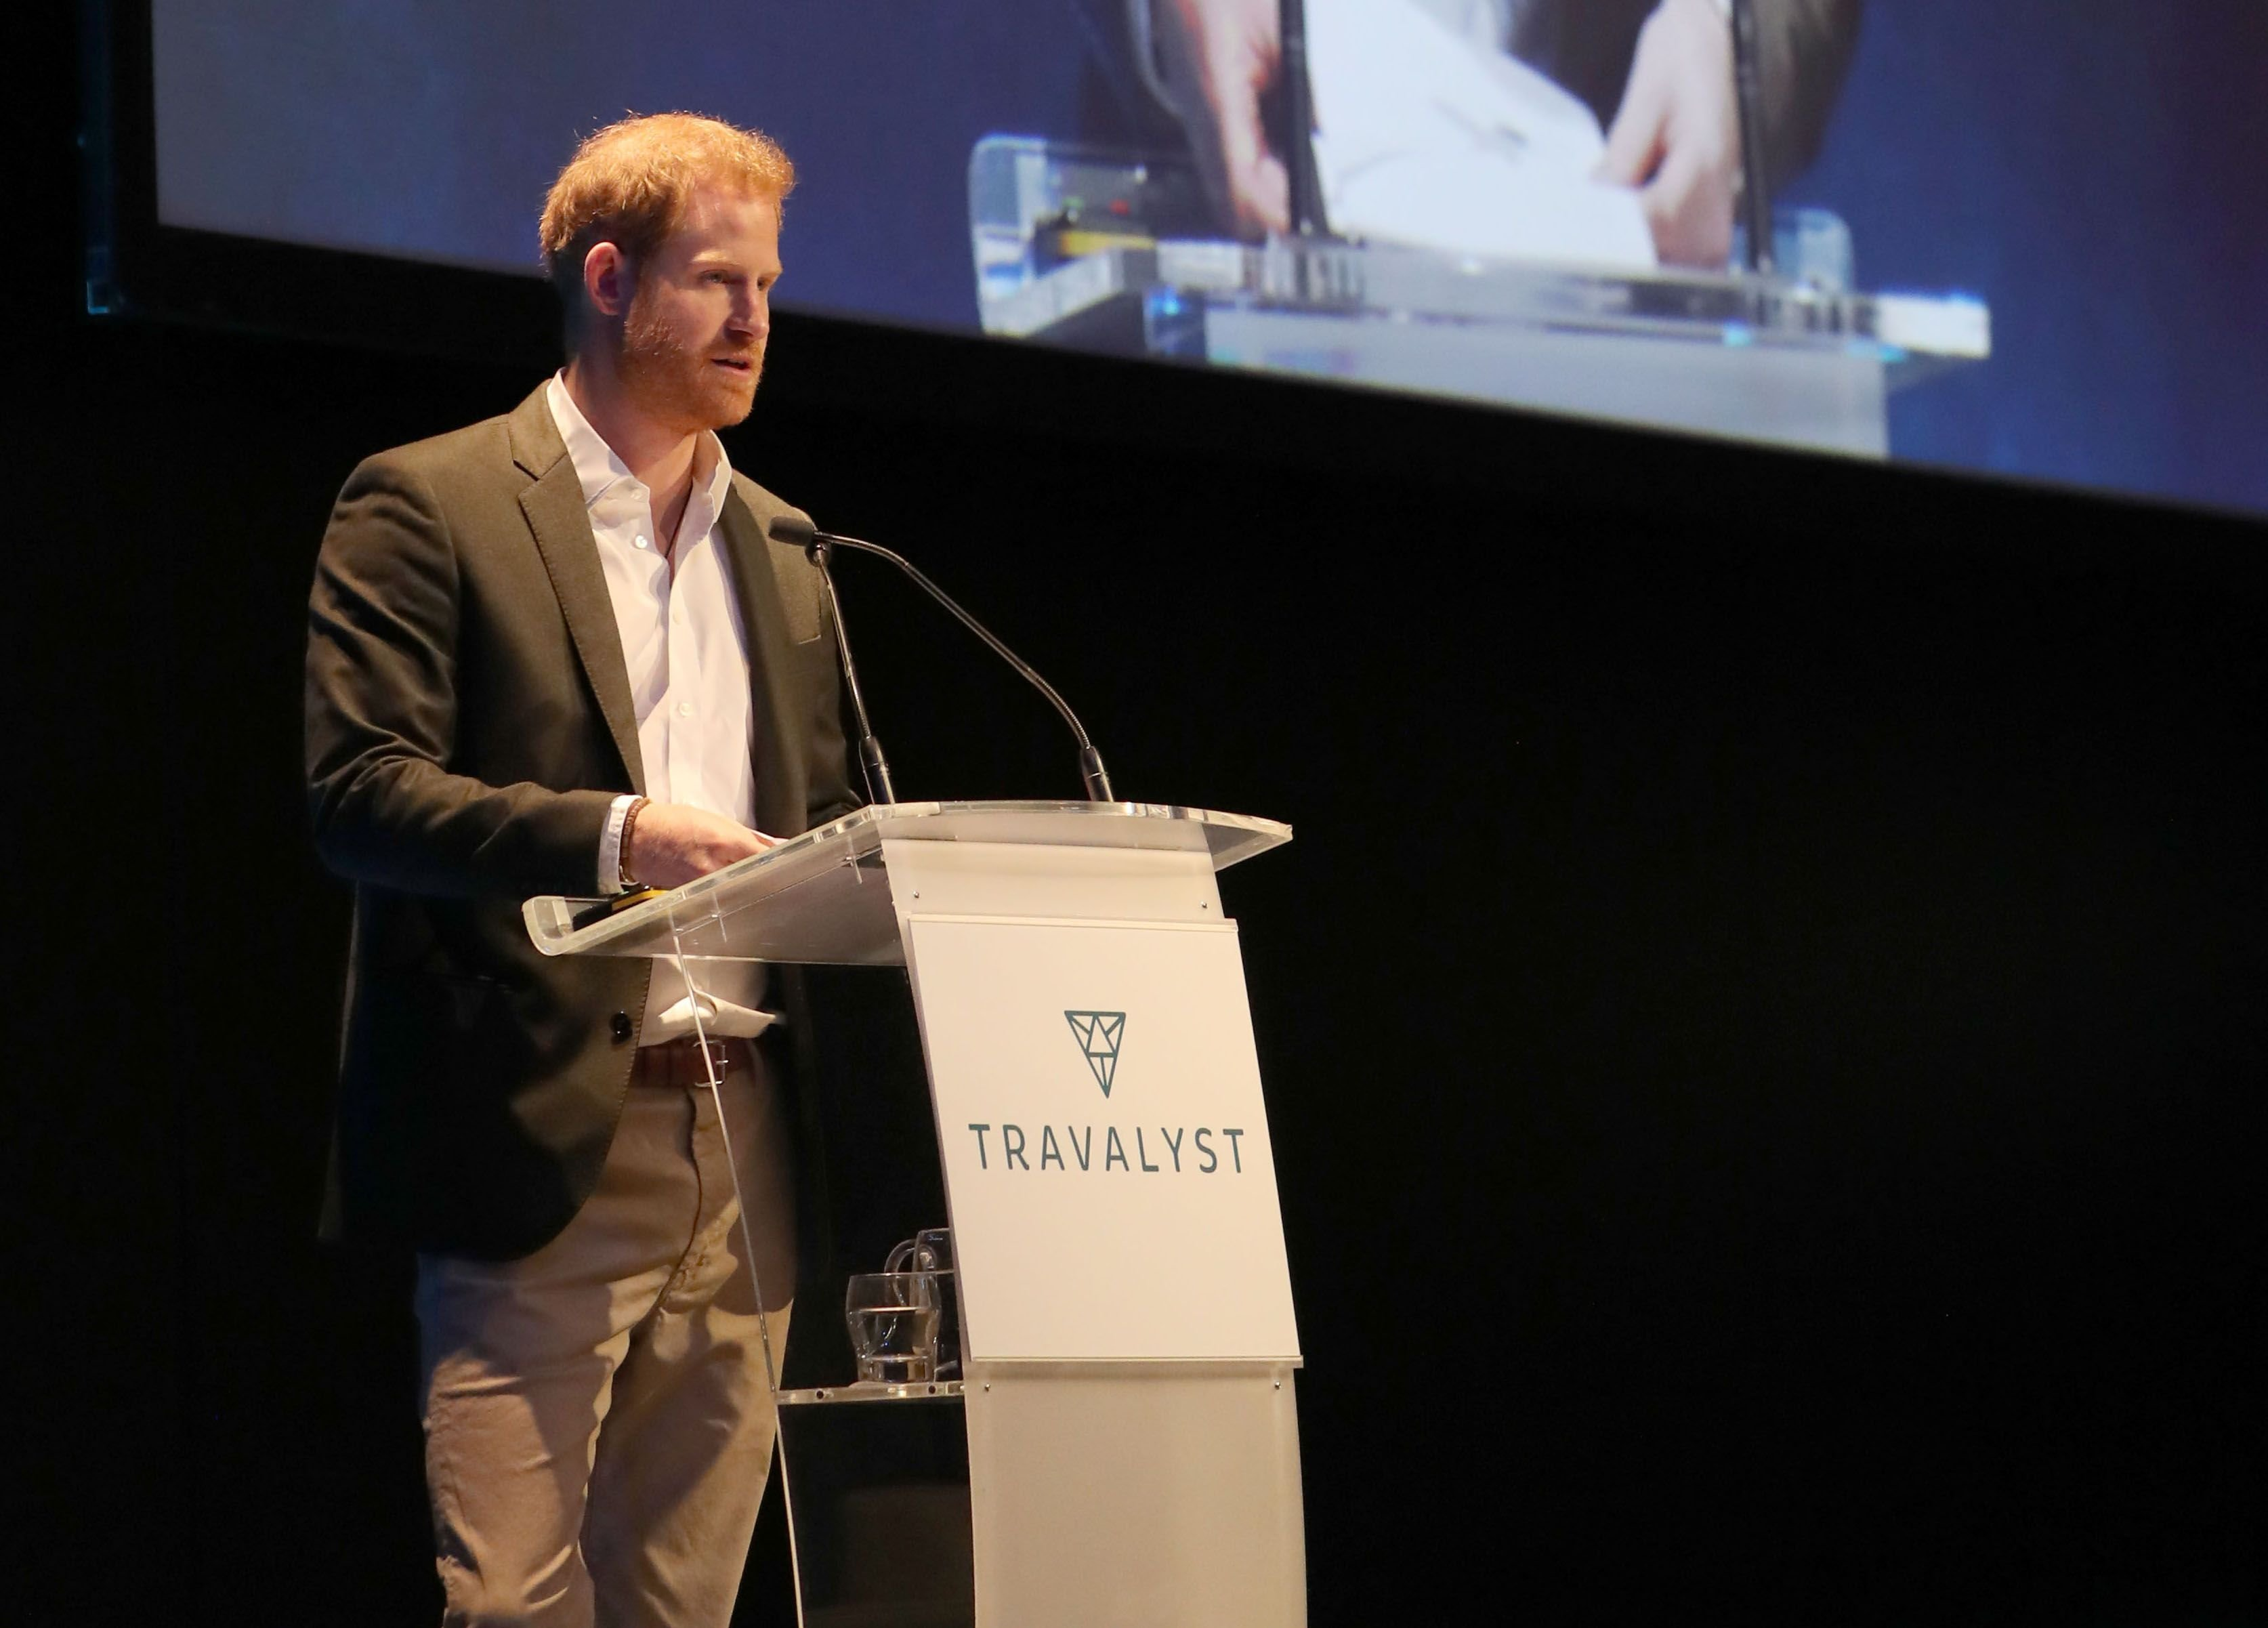 Prince Harry at a sustainable tourism summit at the Edinburgh International Conference Centre on February 26, 2020 | Getty Images